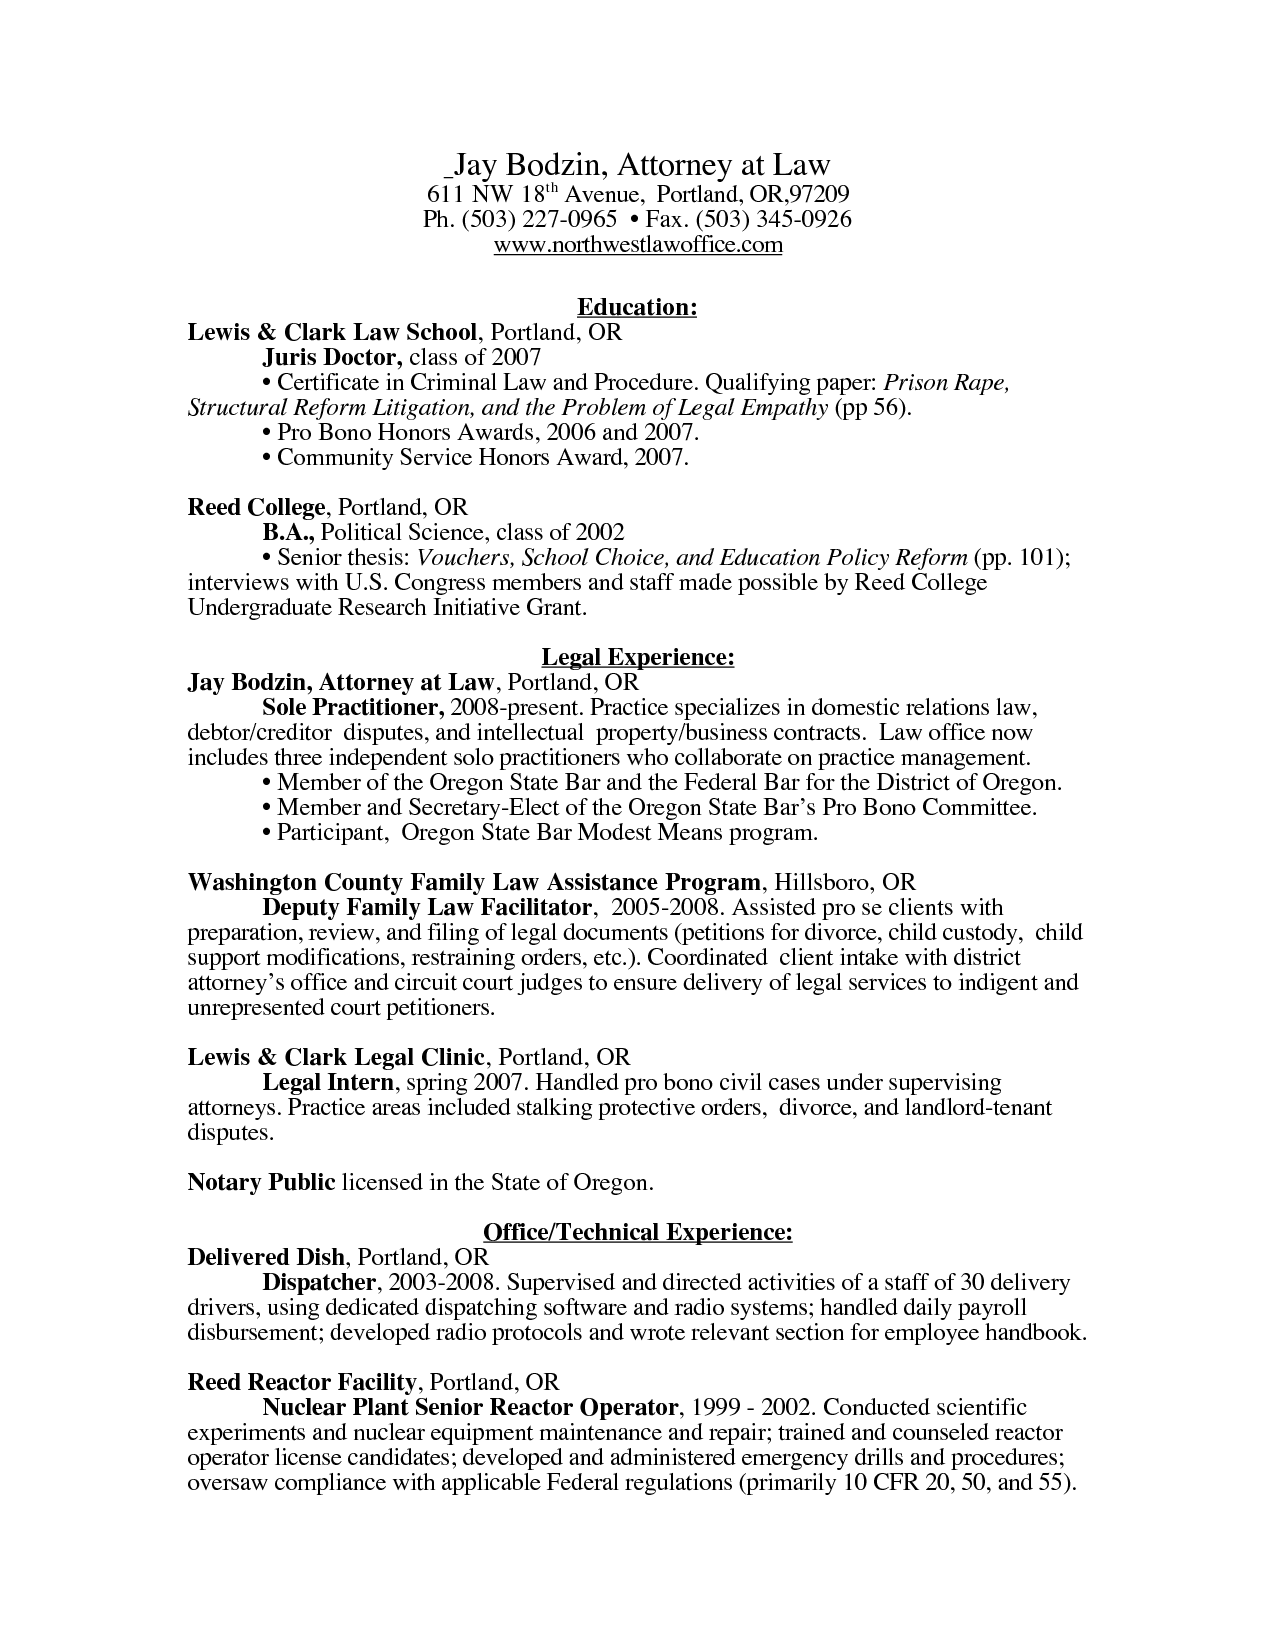 Physician Resume Juris Doctor Resume  Northwest Law Office  Jay Bodzin  Resume